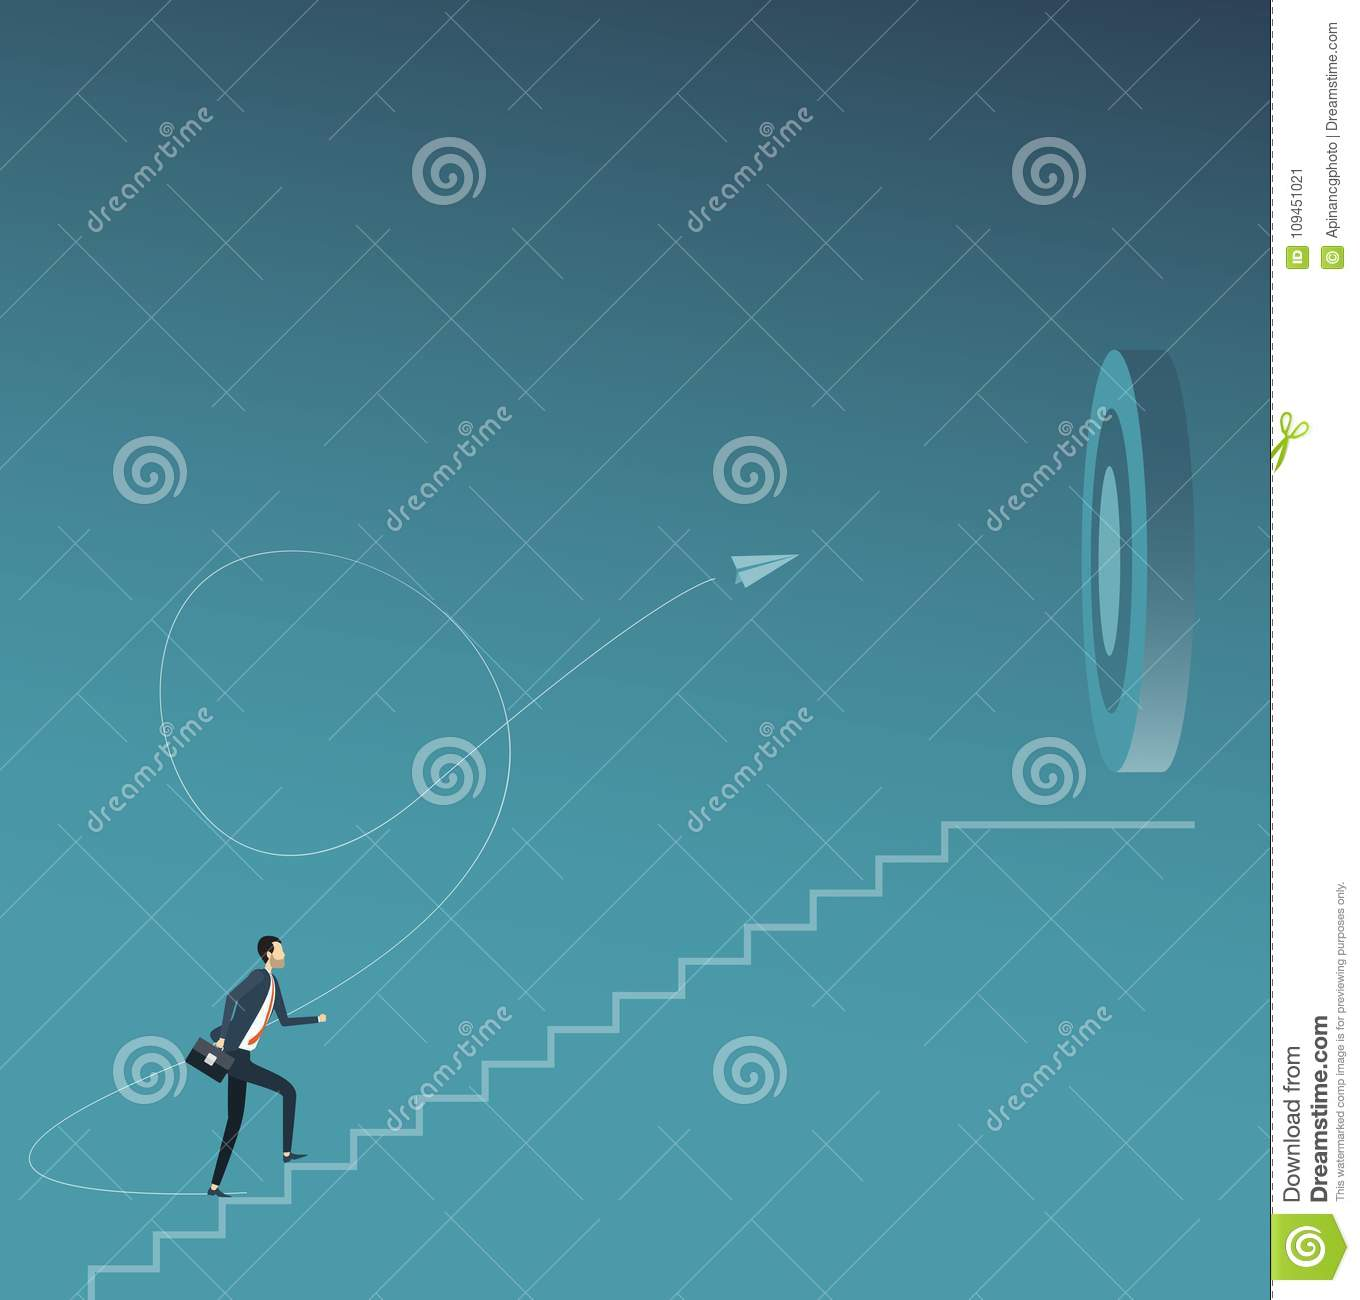 Flat vector businessman focus and walking to business goal target concept